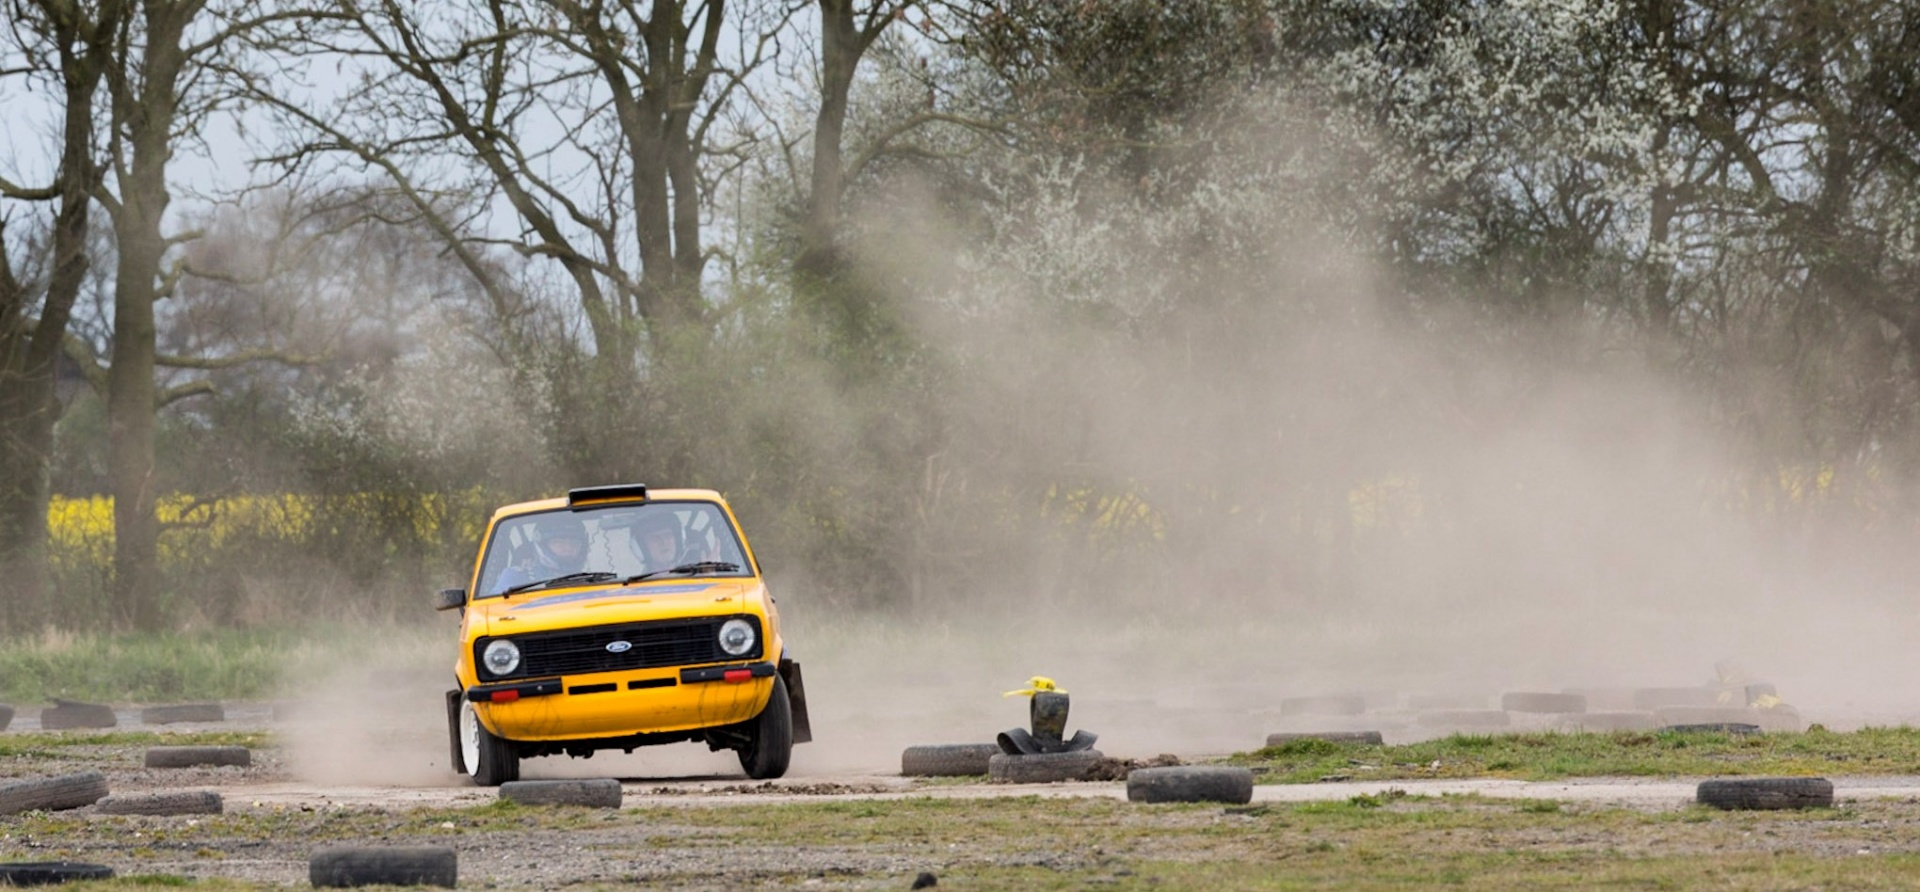 Full Day Rally Driving Introductory Experience in Yorkshire-7